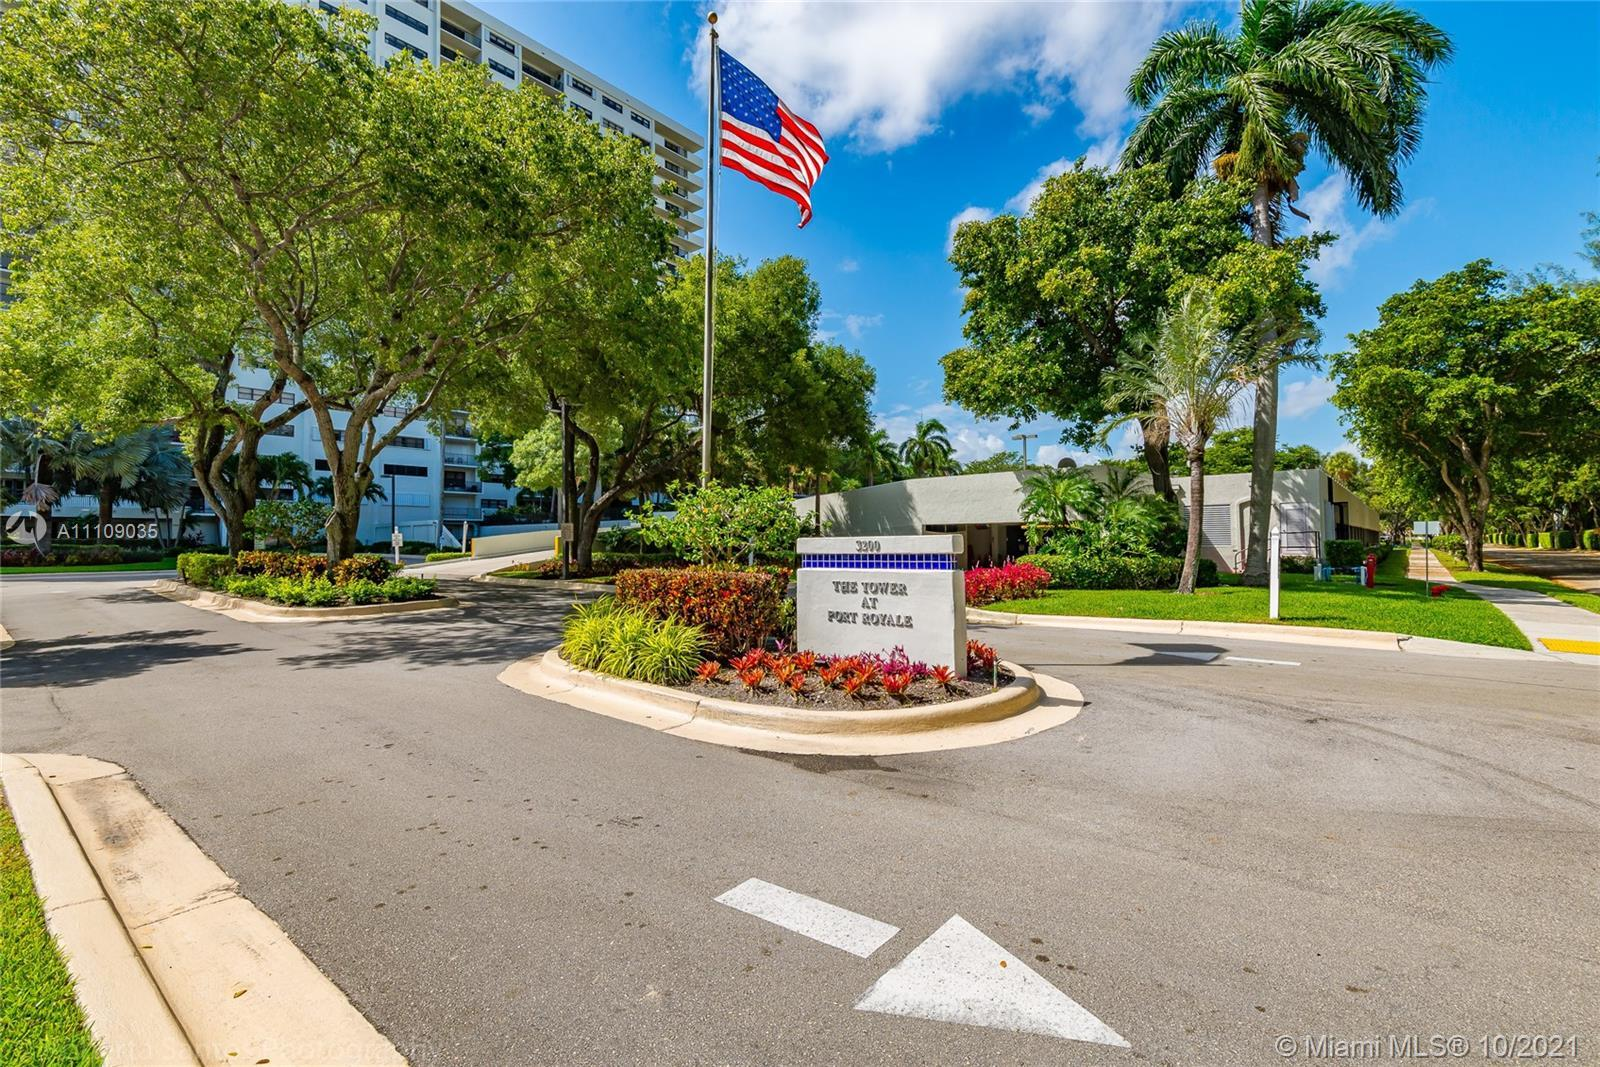 Spacious 2-bedroom, 2-bathroom condo with washer & dryer in unit, large balcony, and remodeled bathr